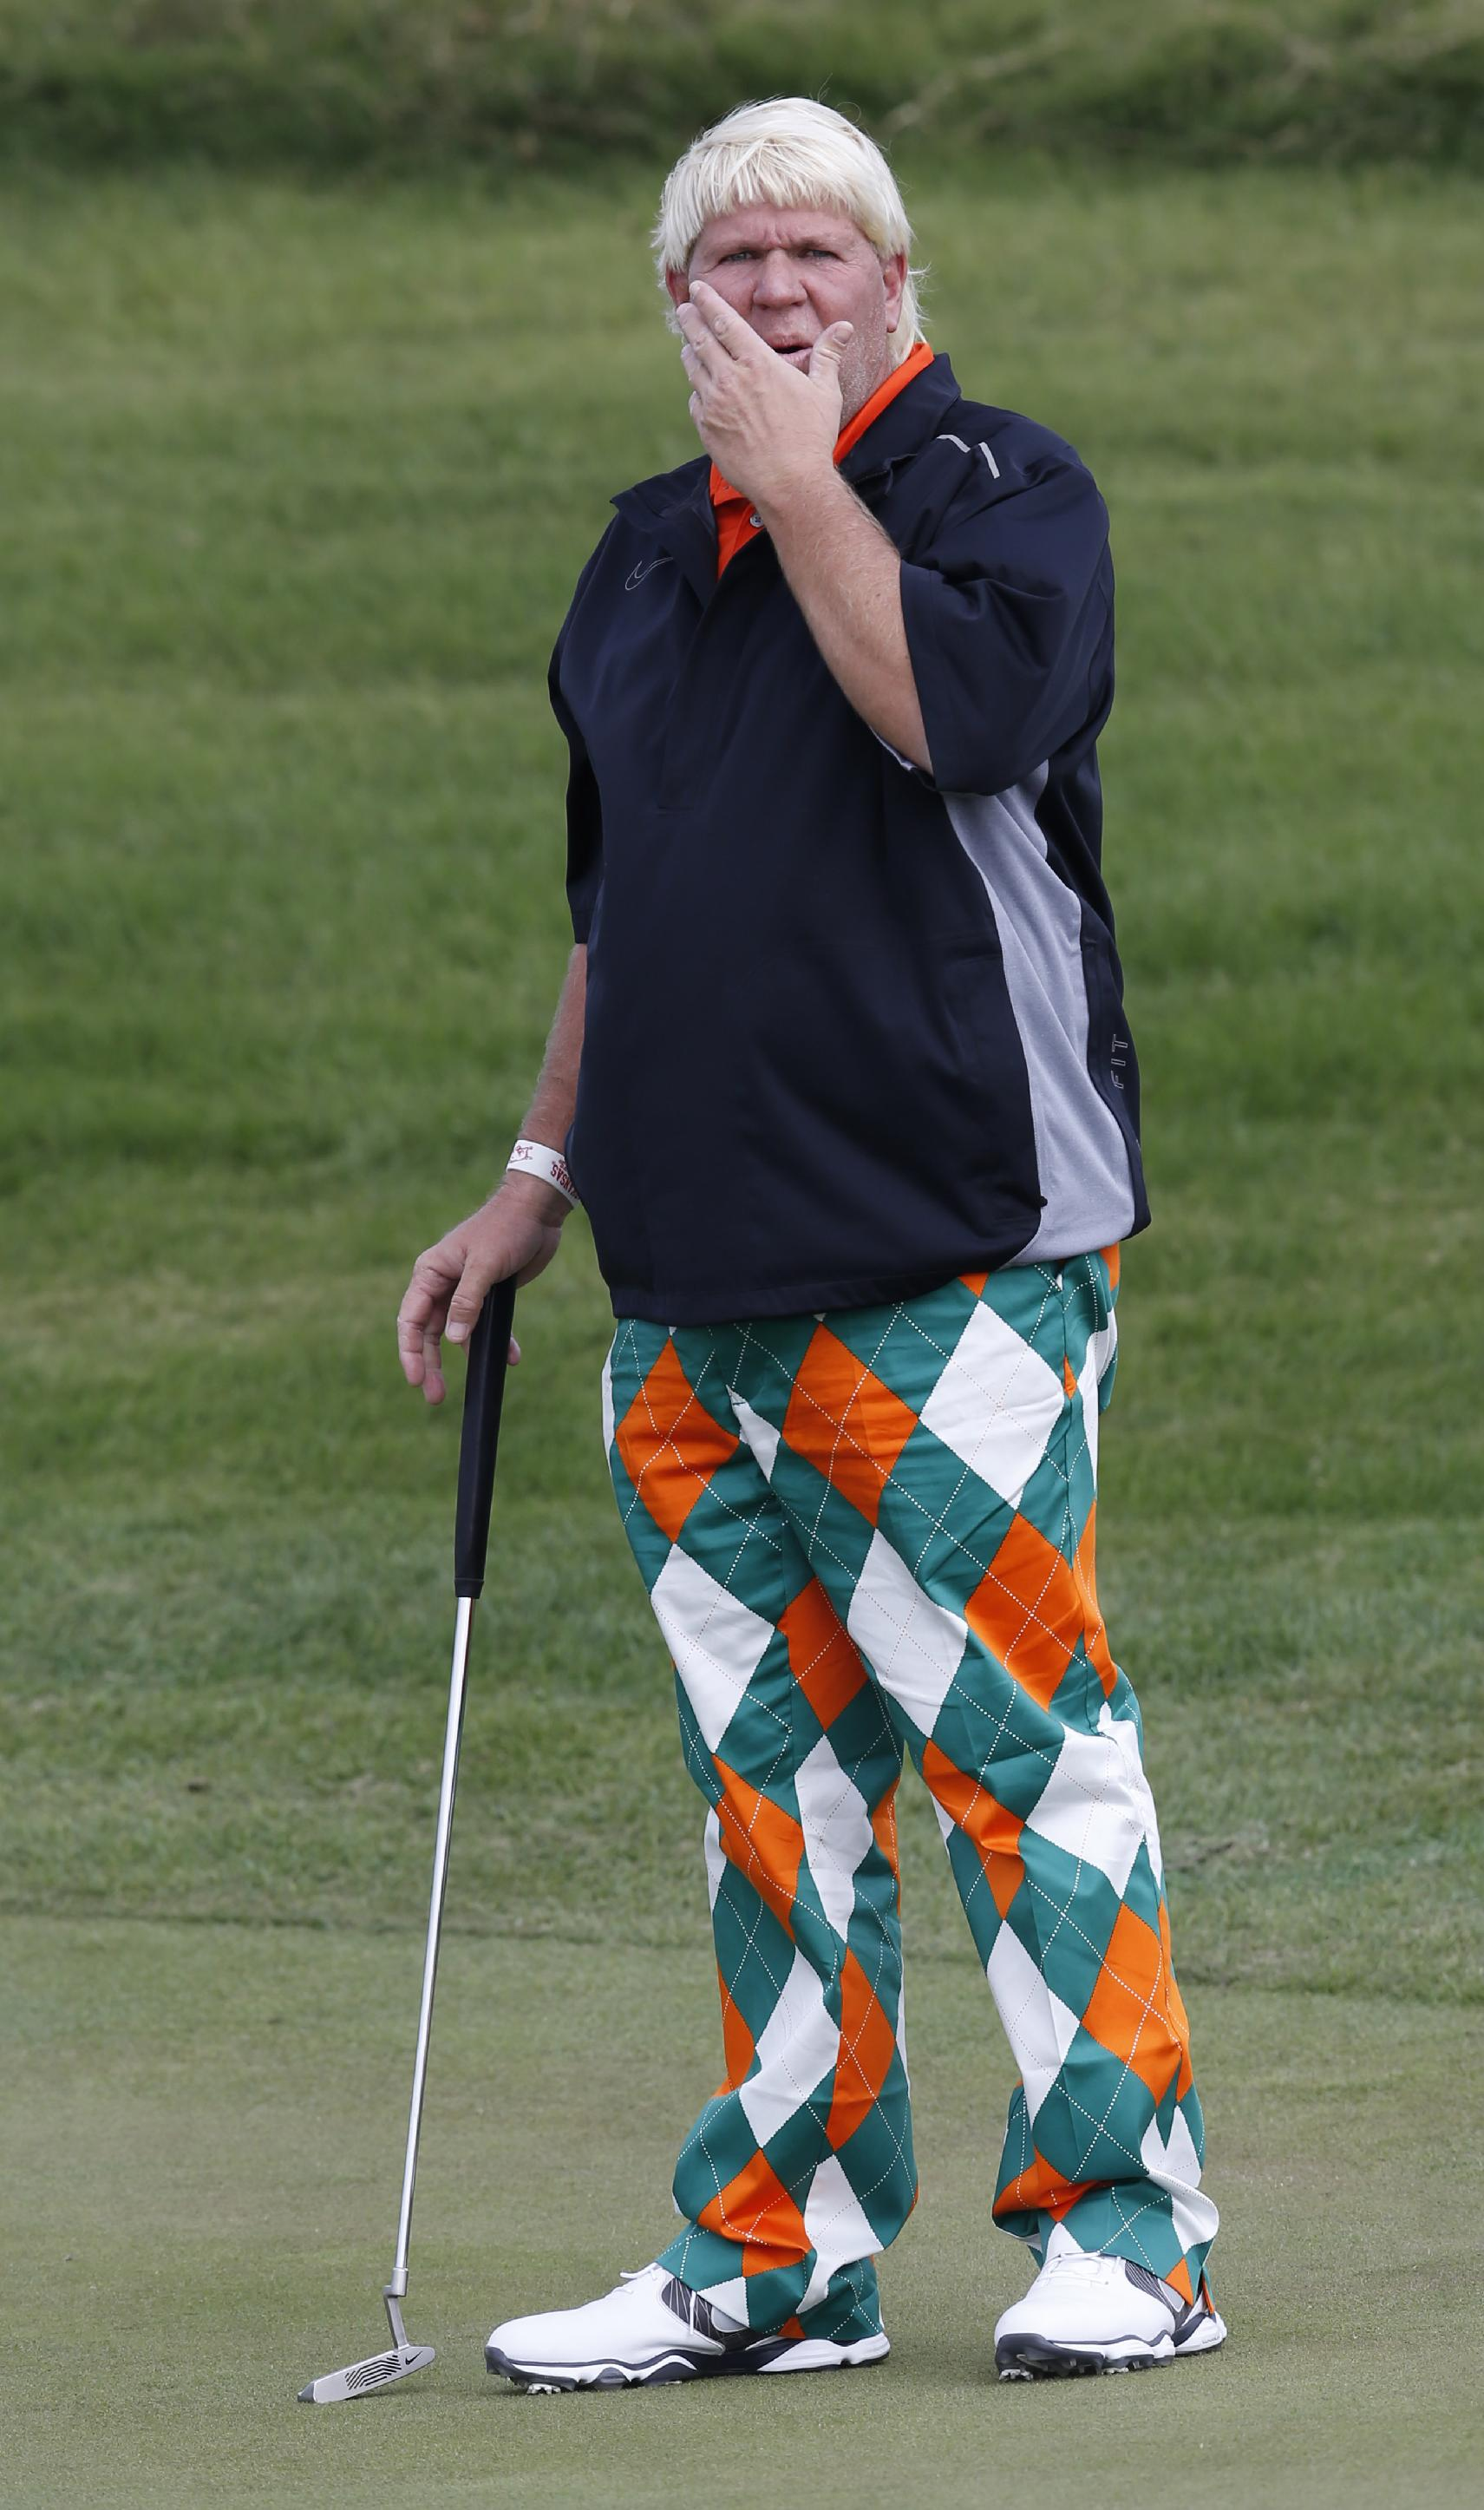 John Daly of the U.S. reads the green before putting at the 2nd green during a pro-am competition ahead of the Masters golf tournament at the Lake Malaren Golf Club in Shanghai, China, Wednesday, Oct. 23, 2013. The Shanghai Masters will begin on Oct. 24